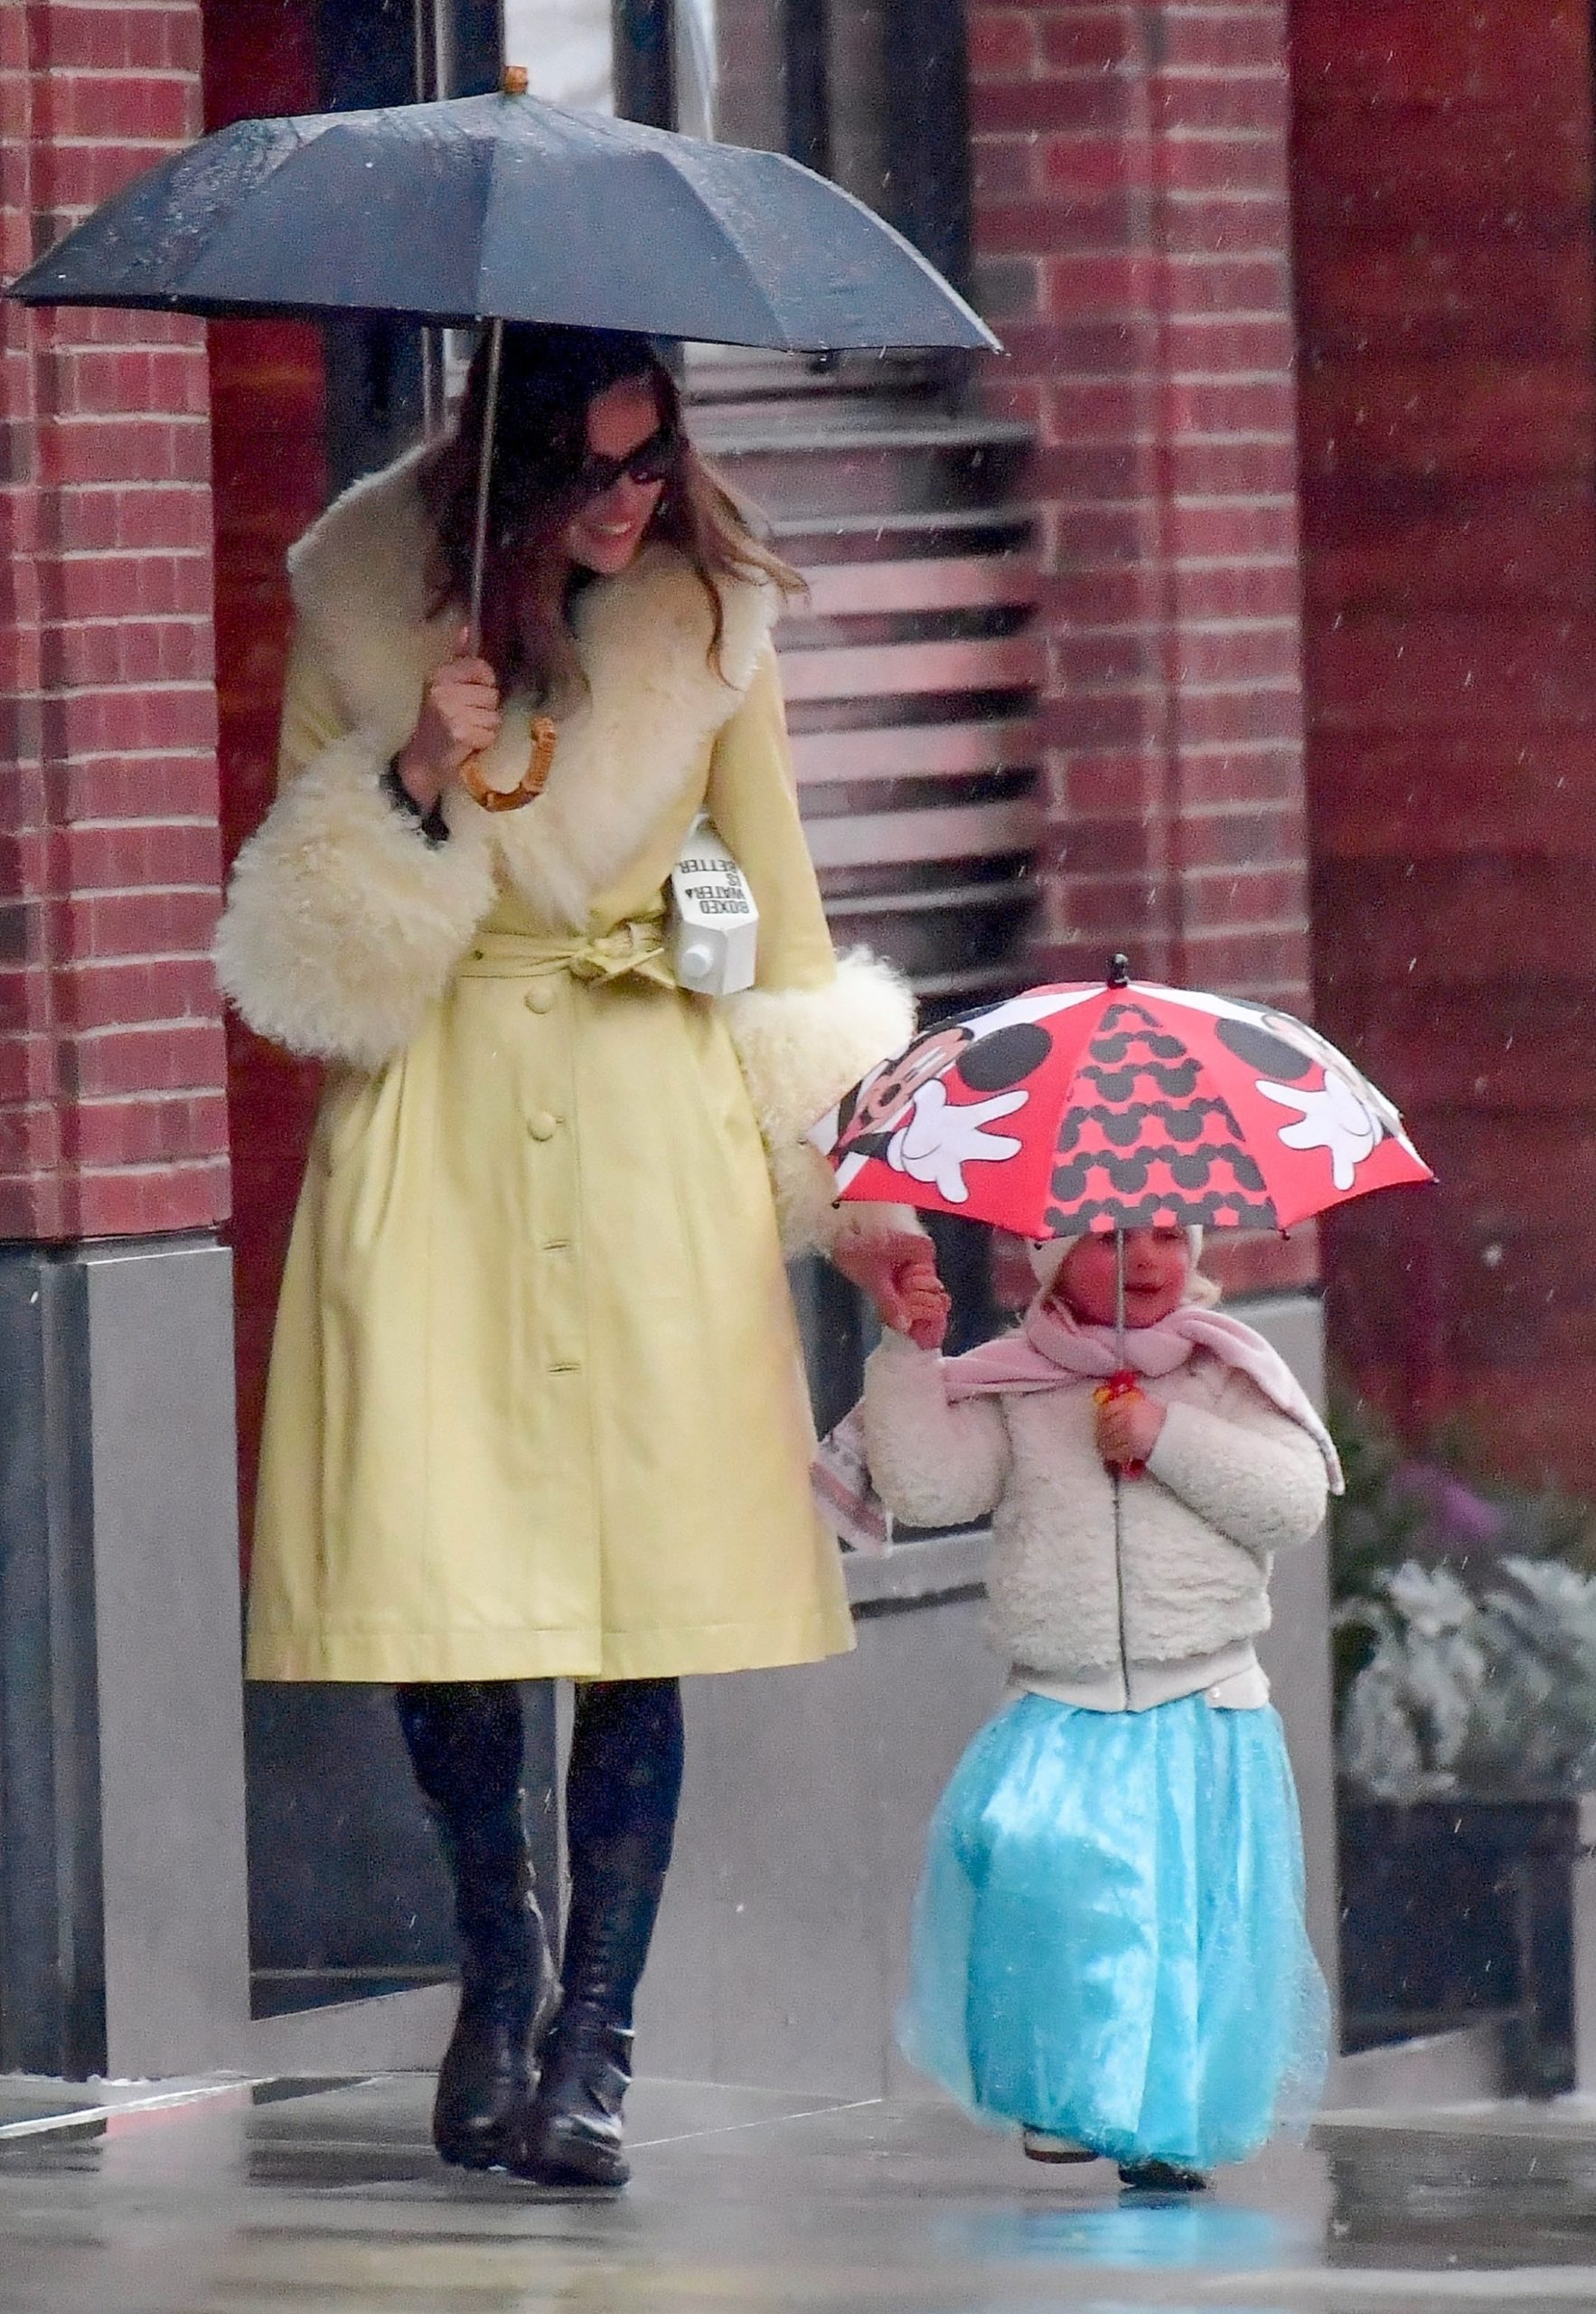 СПЕЦЦЕНА. ТРЕБУЕТСЯ ОДОБРЕНИЕ. SPECIAL PRICE APPLIES. APPROVAL REQUIRED *EXCLUSIVE*  - Irina Shayk isn't letting a little rain ruin her shopping day with daughter Lea De Seine in NYC